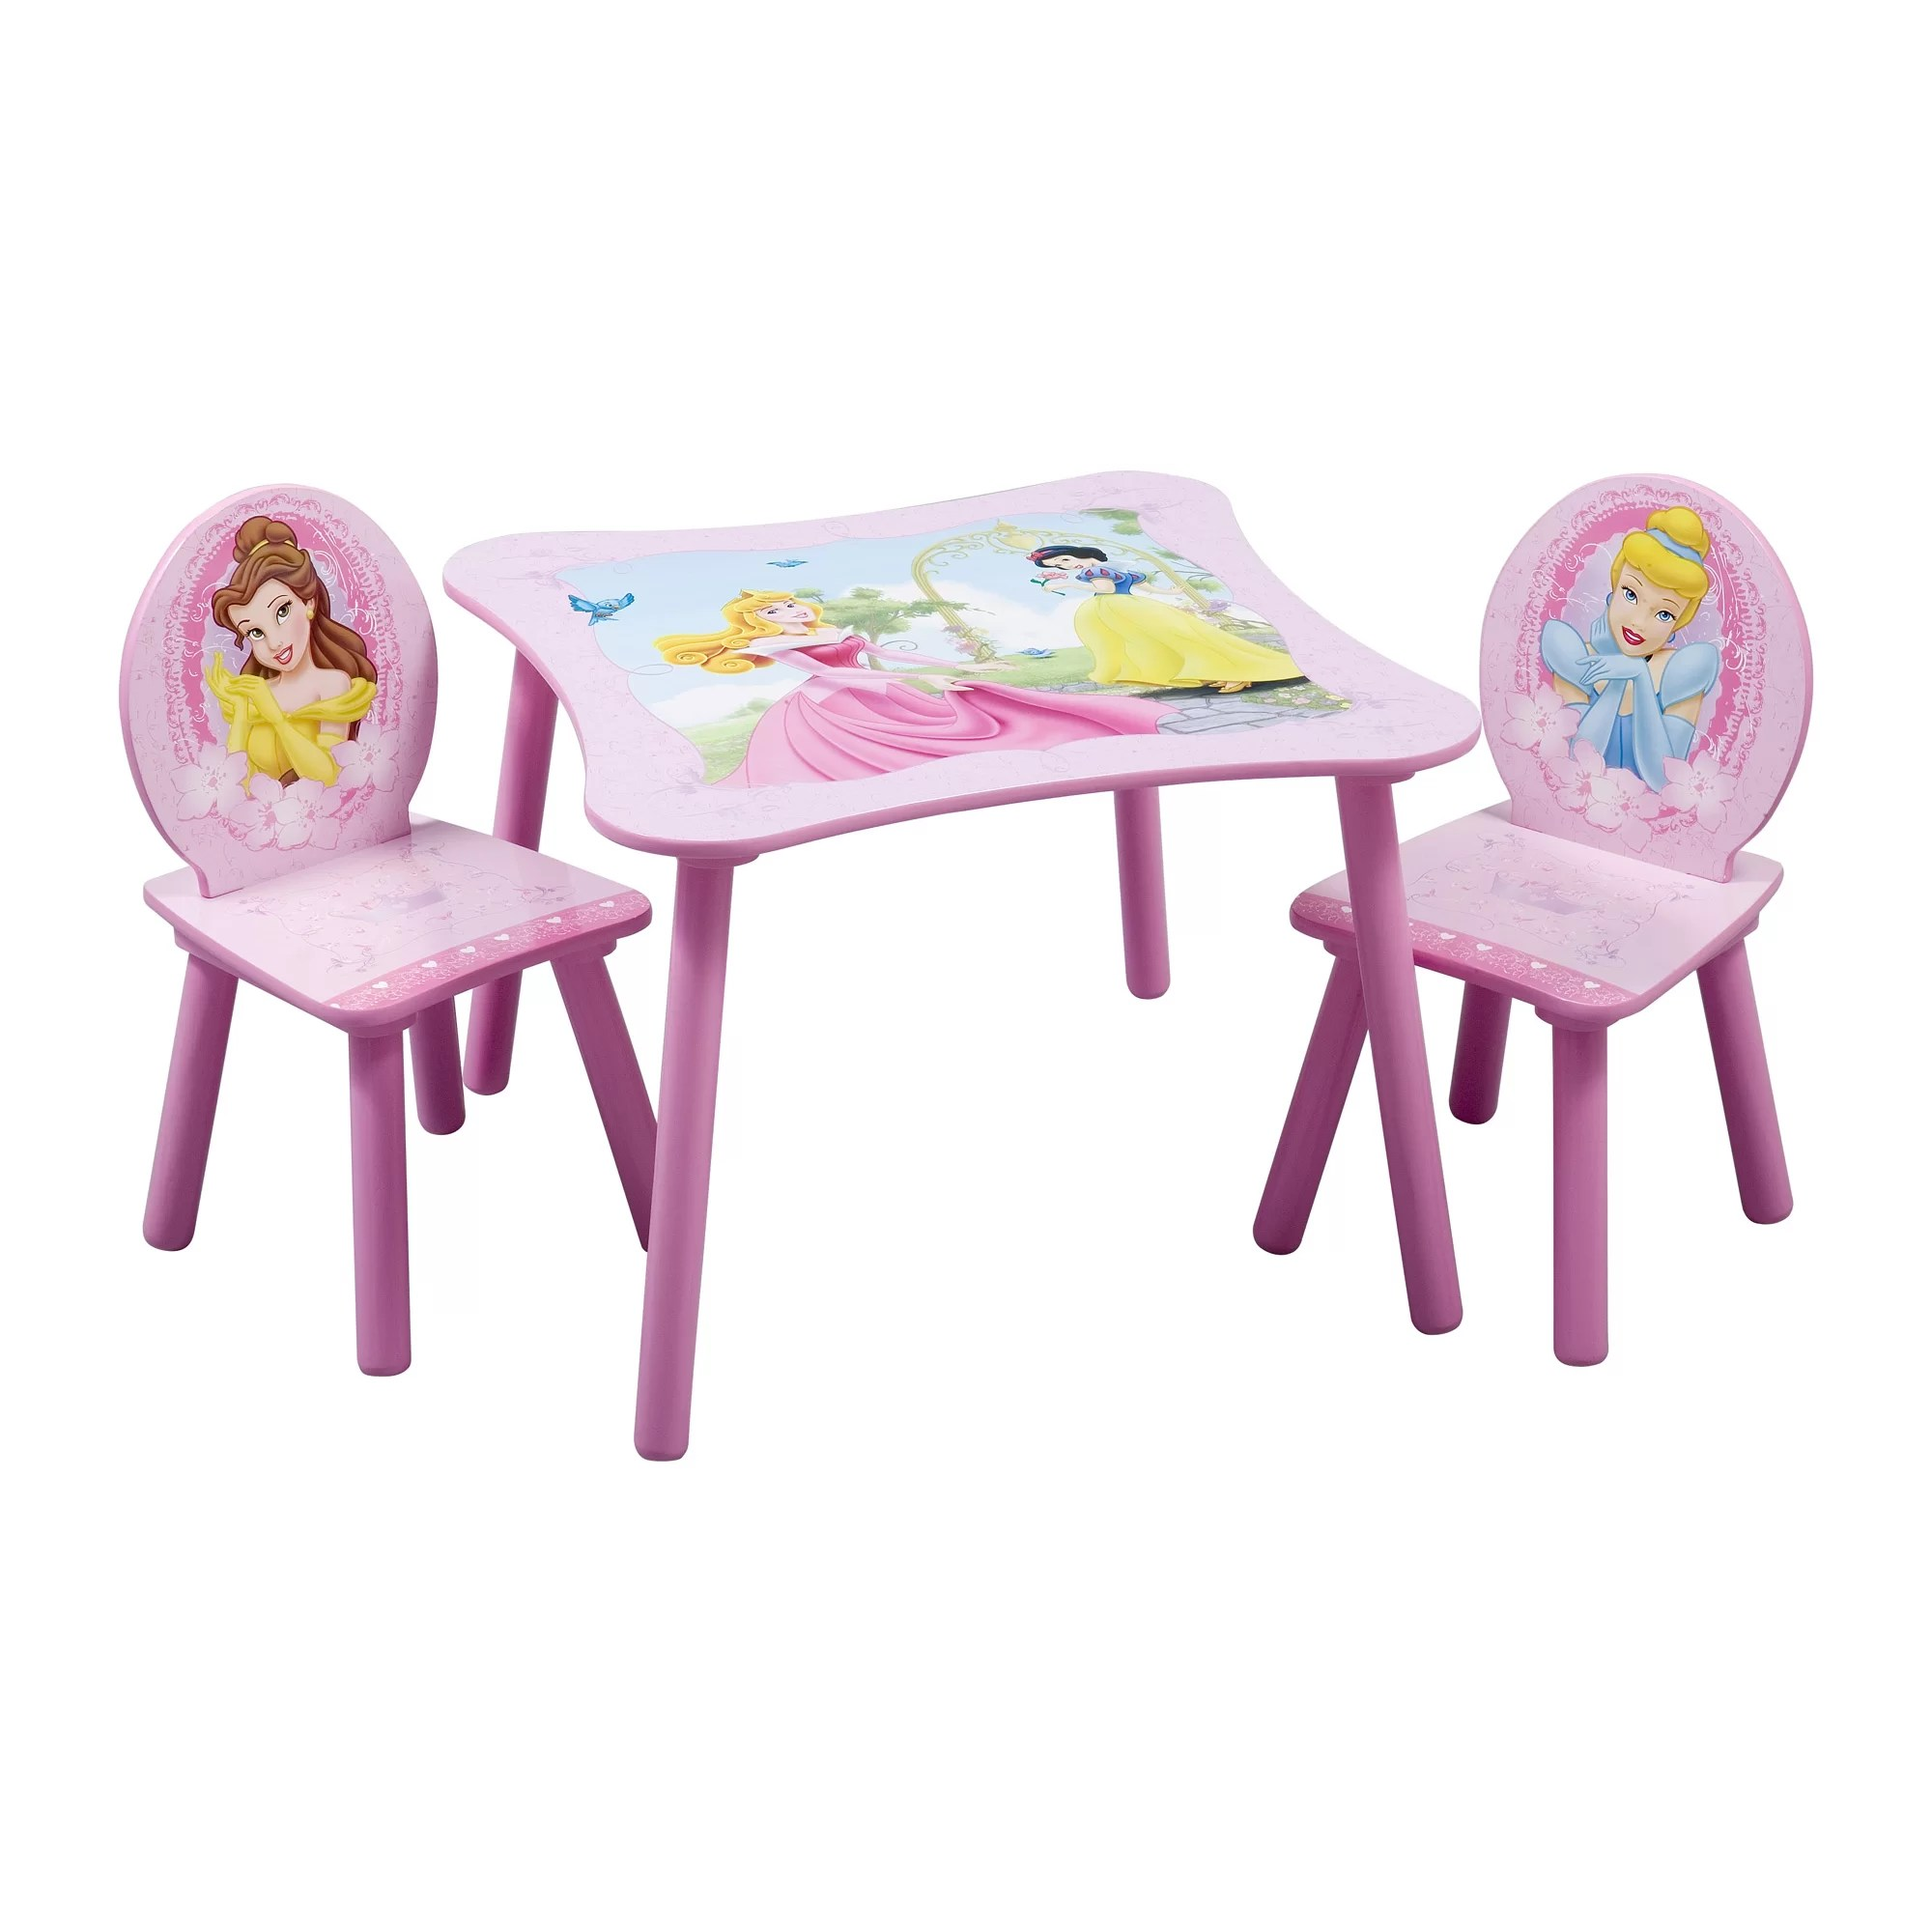 3 piece toddler sofa set crate and barrel microfiber sectional delta children disney princess kids table chair